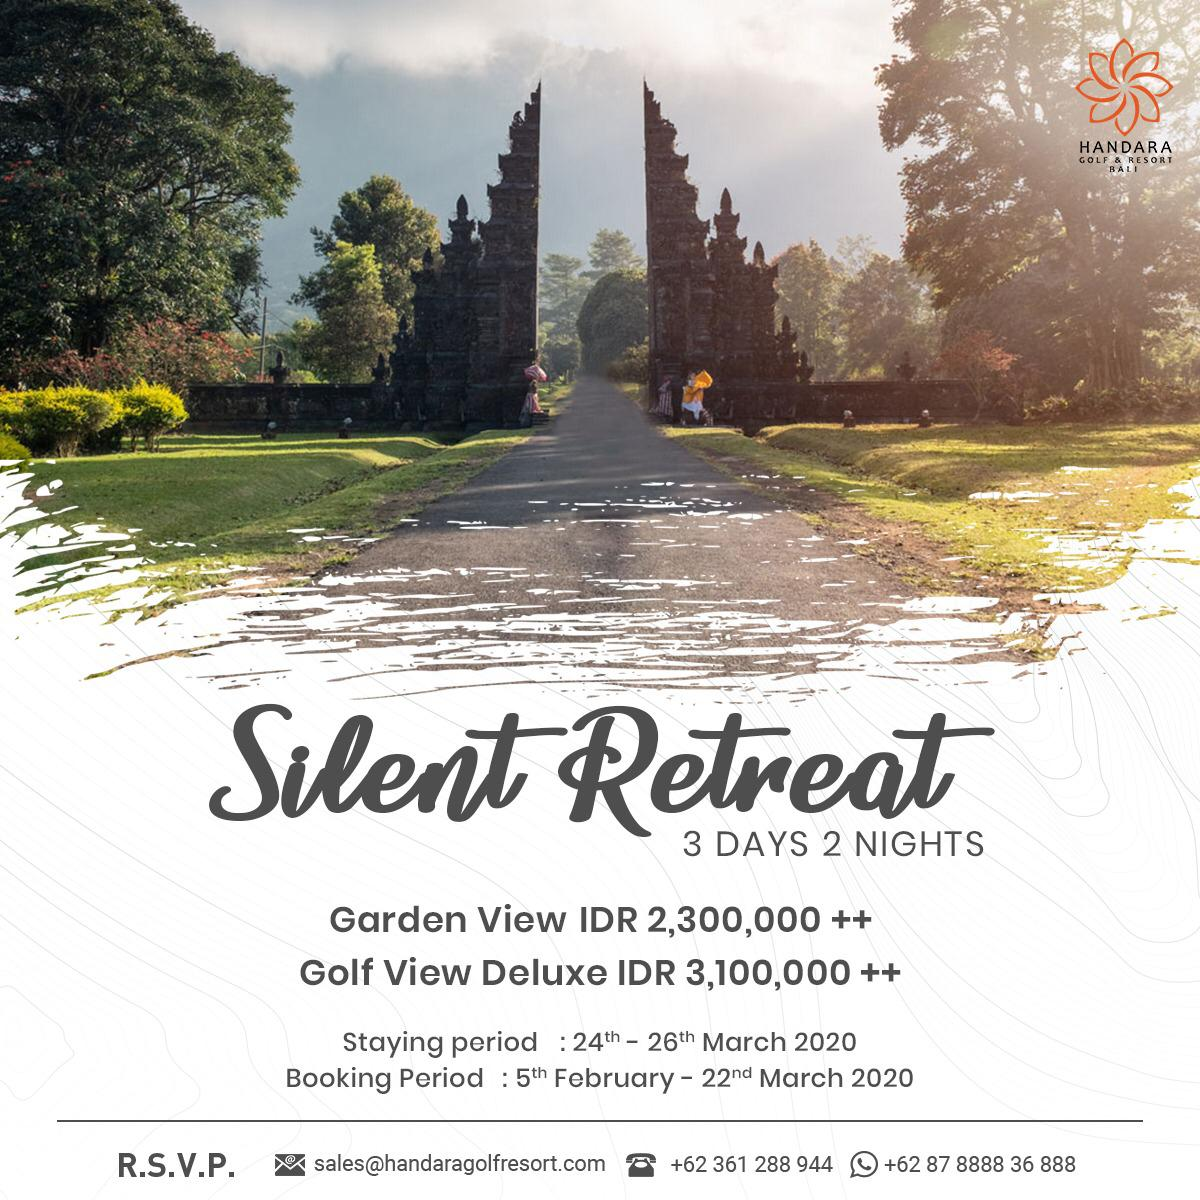 https://highend-traveller.com/experience-the-tranquility-of-nyepi-balinese-day-of-silence-at-handara-golf-resort-bali-%e2%81%a0-%e2%81%a0/